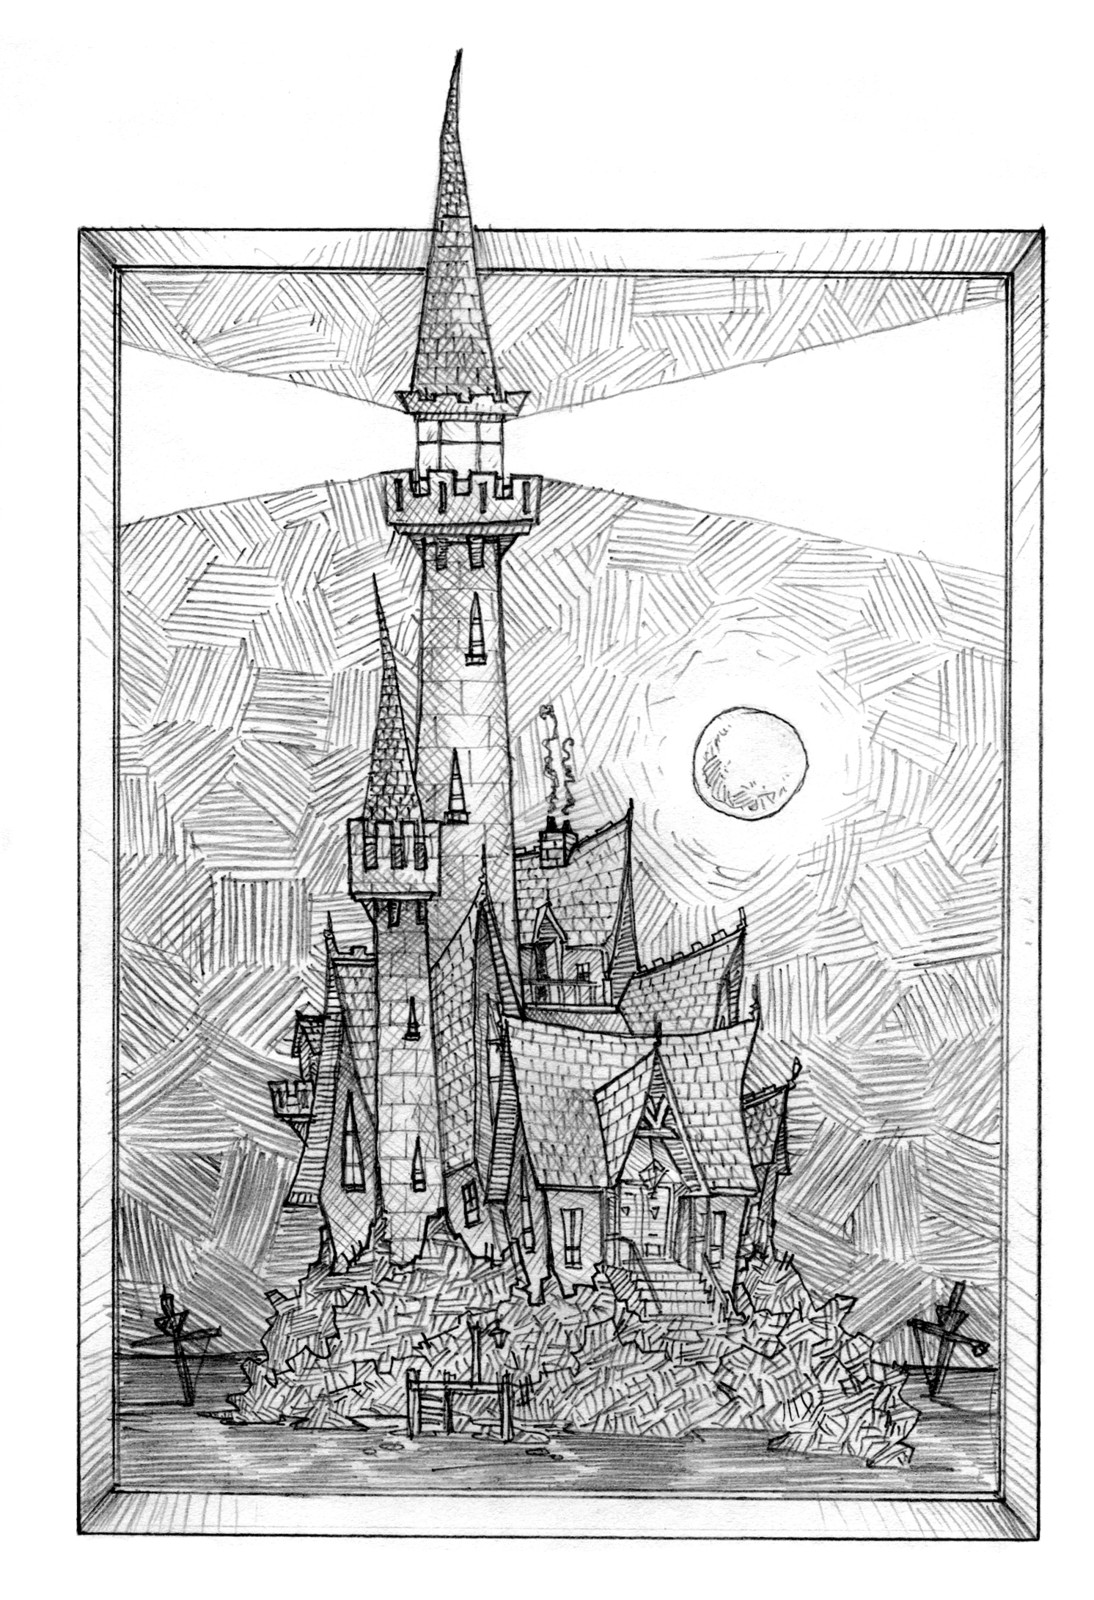 My illustration of the castle in the book.